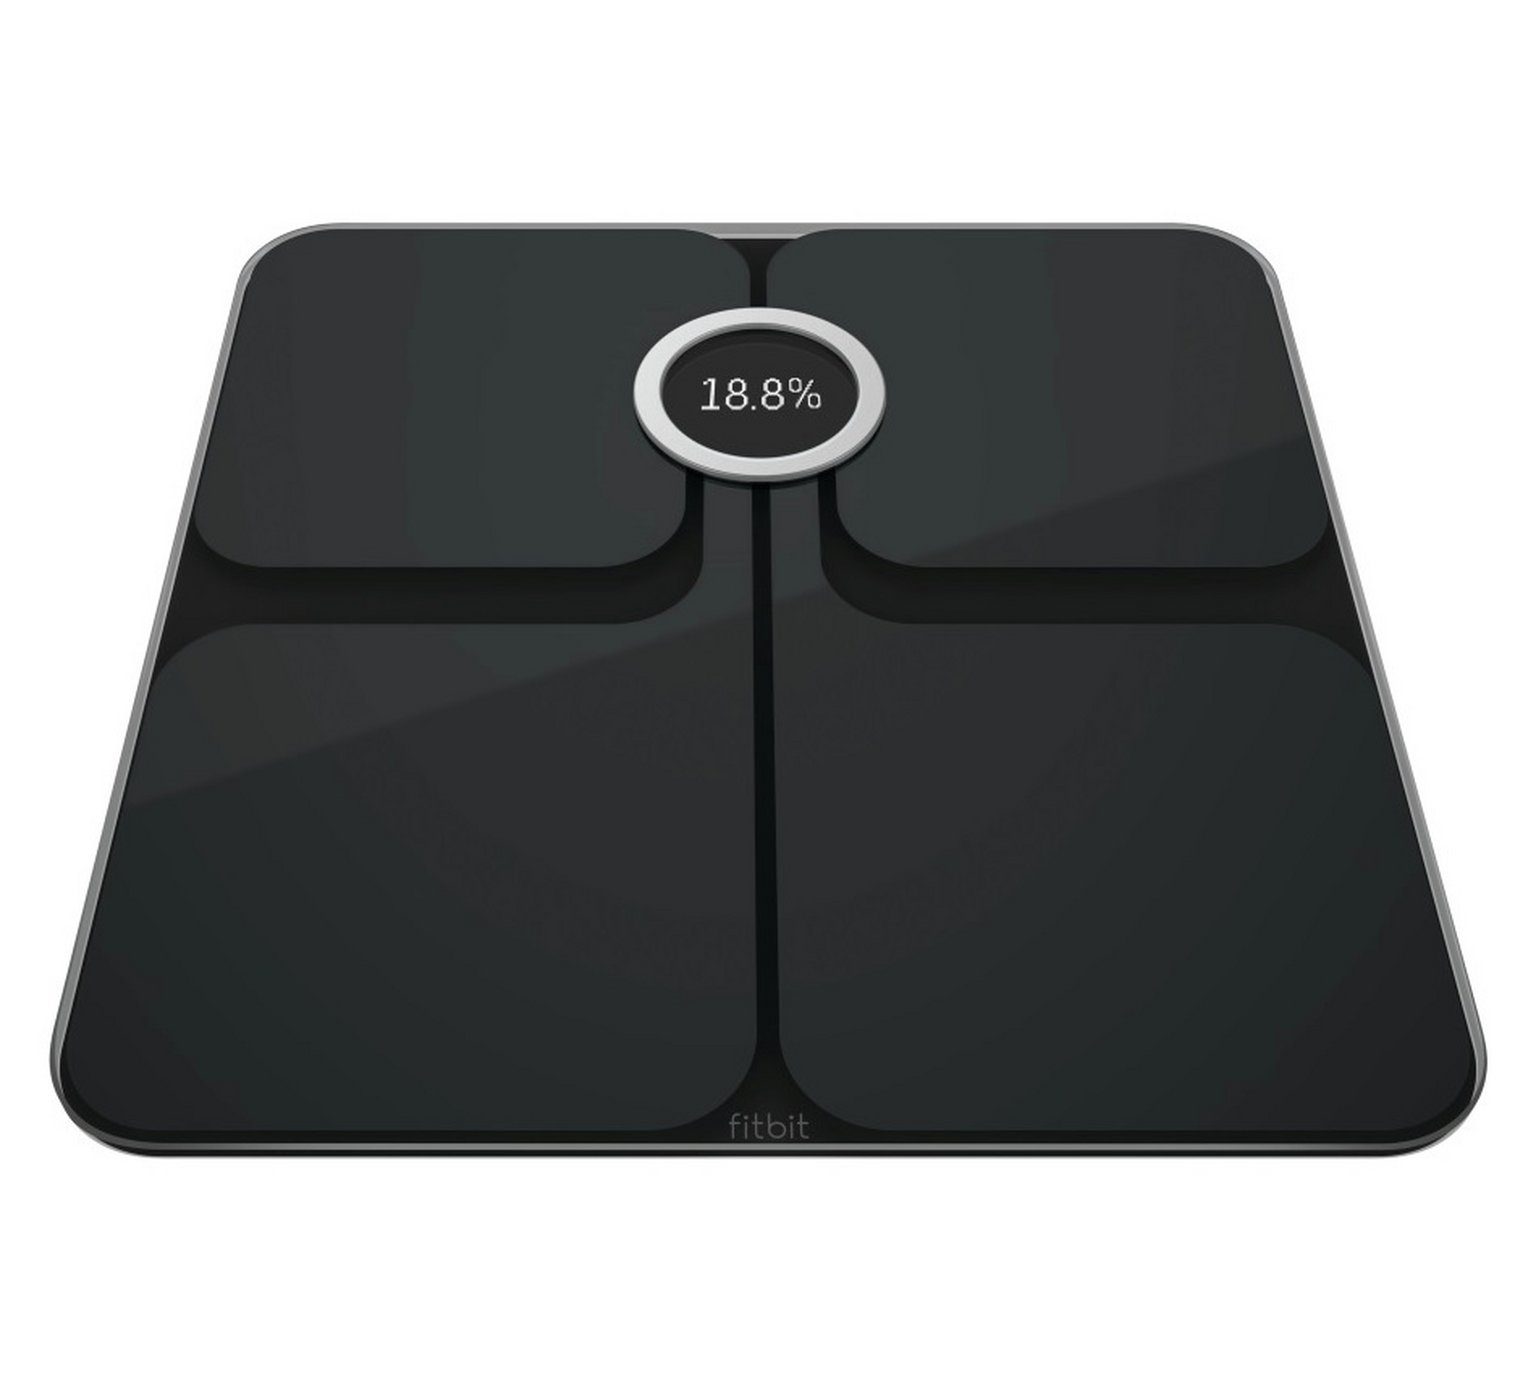 Fitbit Aria 2 Wi-Fi Body Weight Analysis Scale - Black